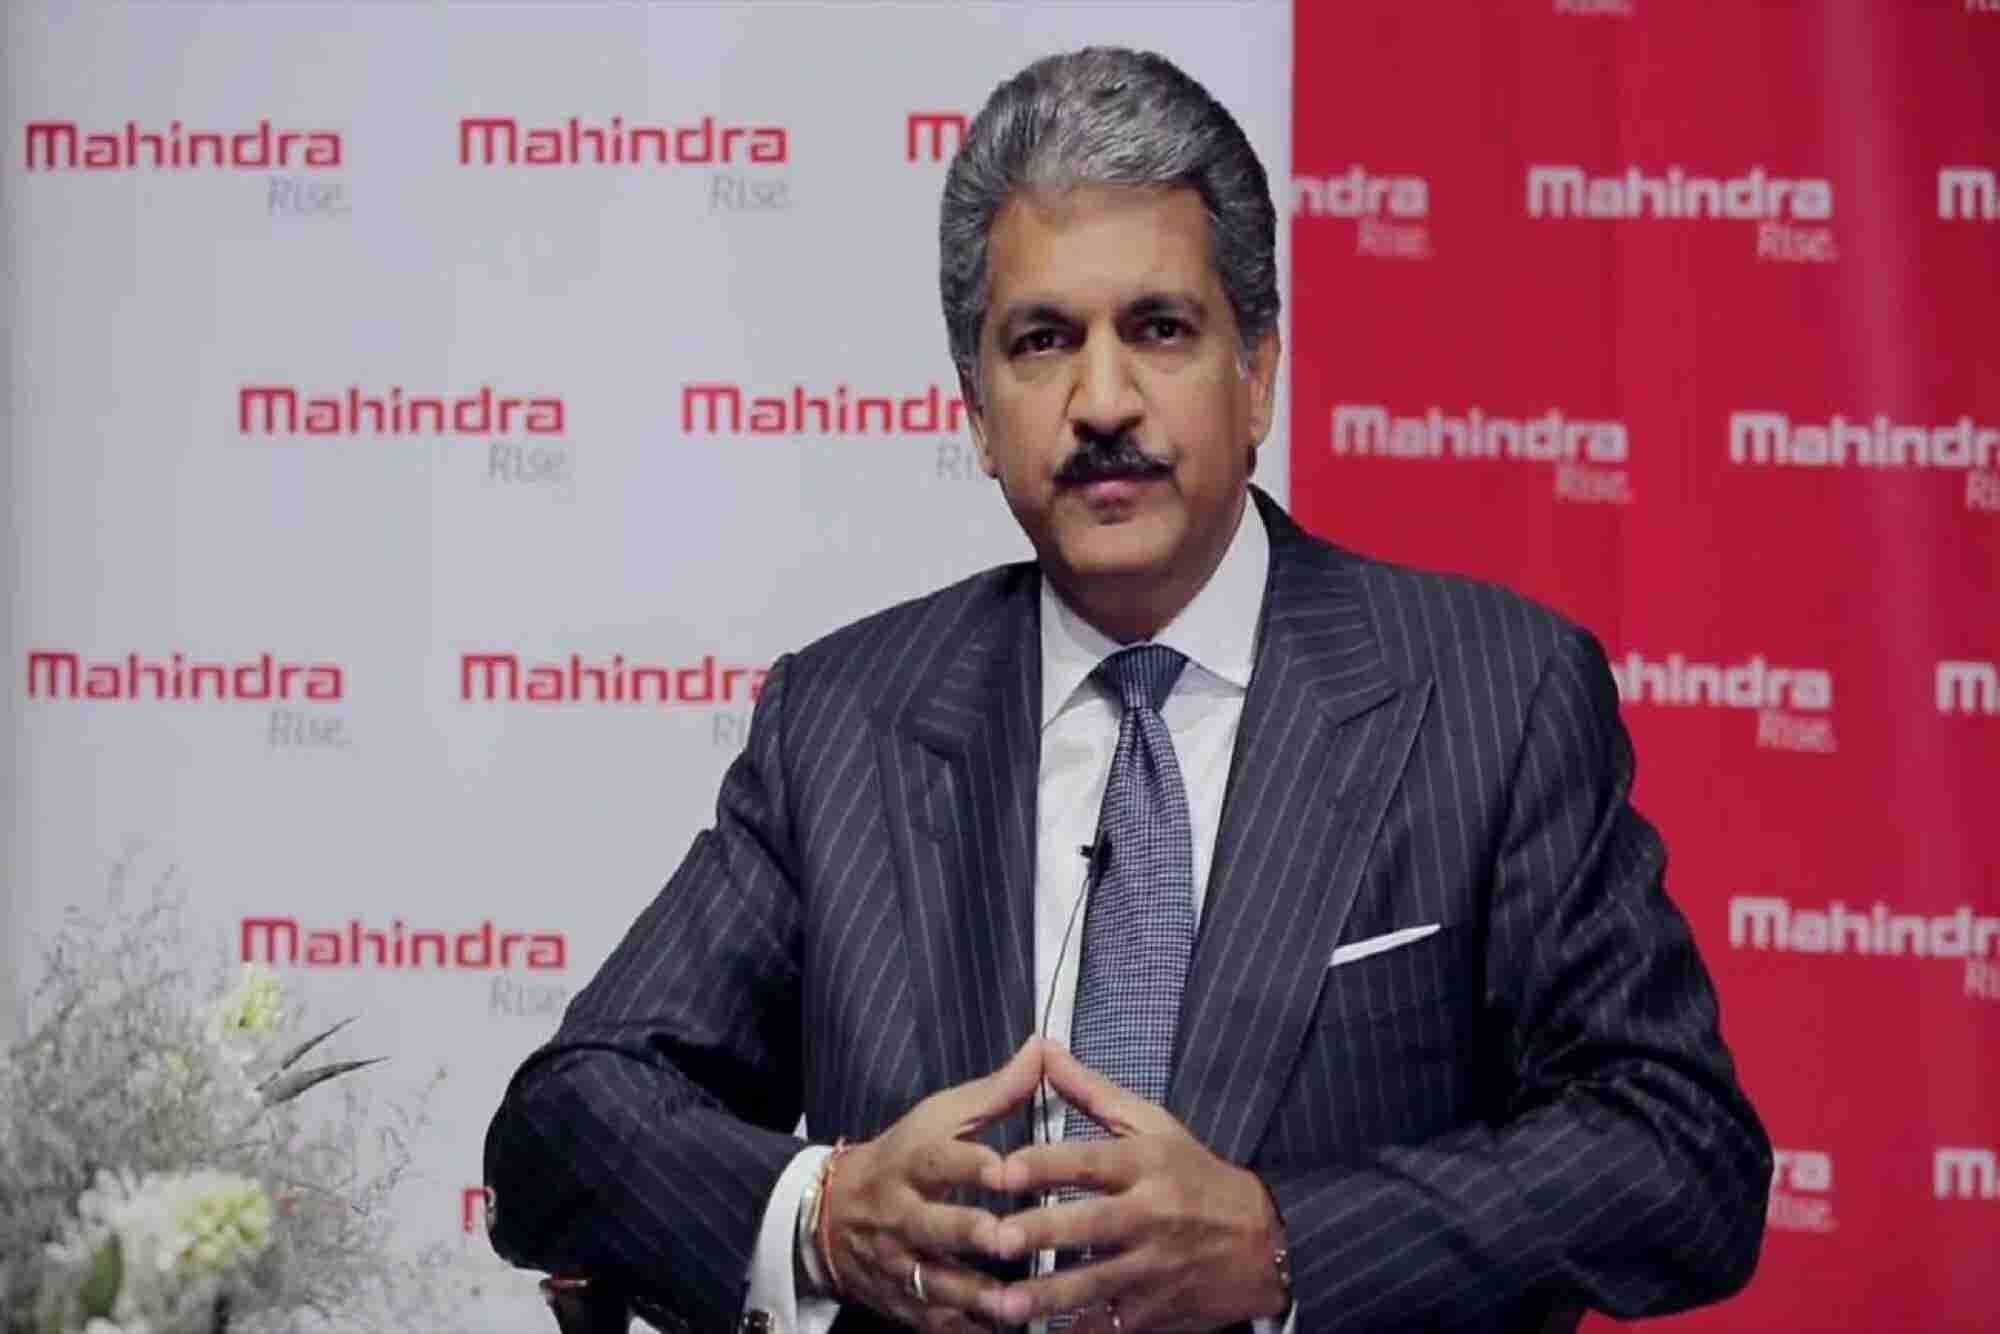 Anand Mahindra Asks Twitterati to Help Name His Next Car